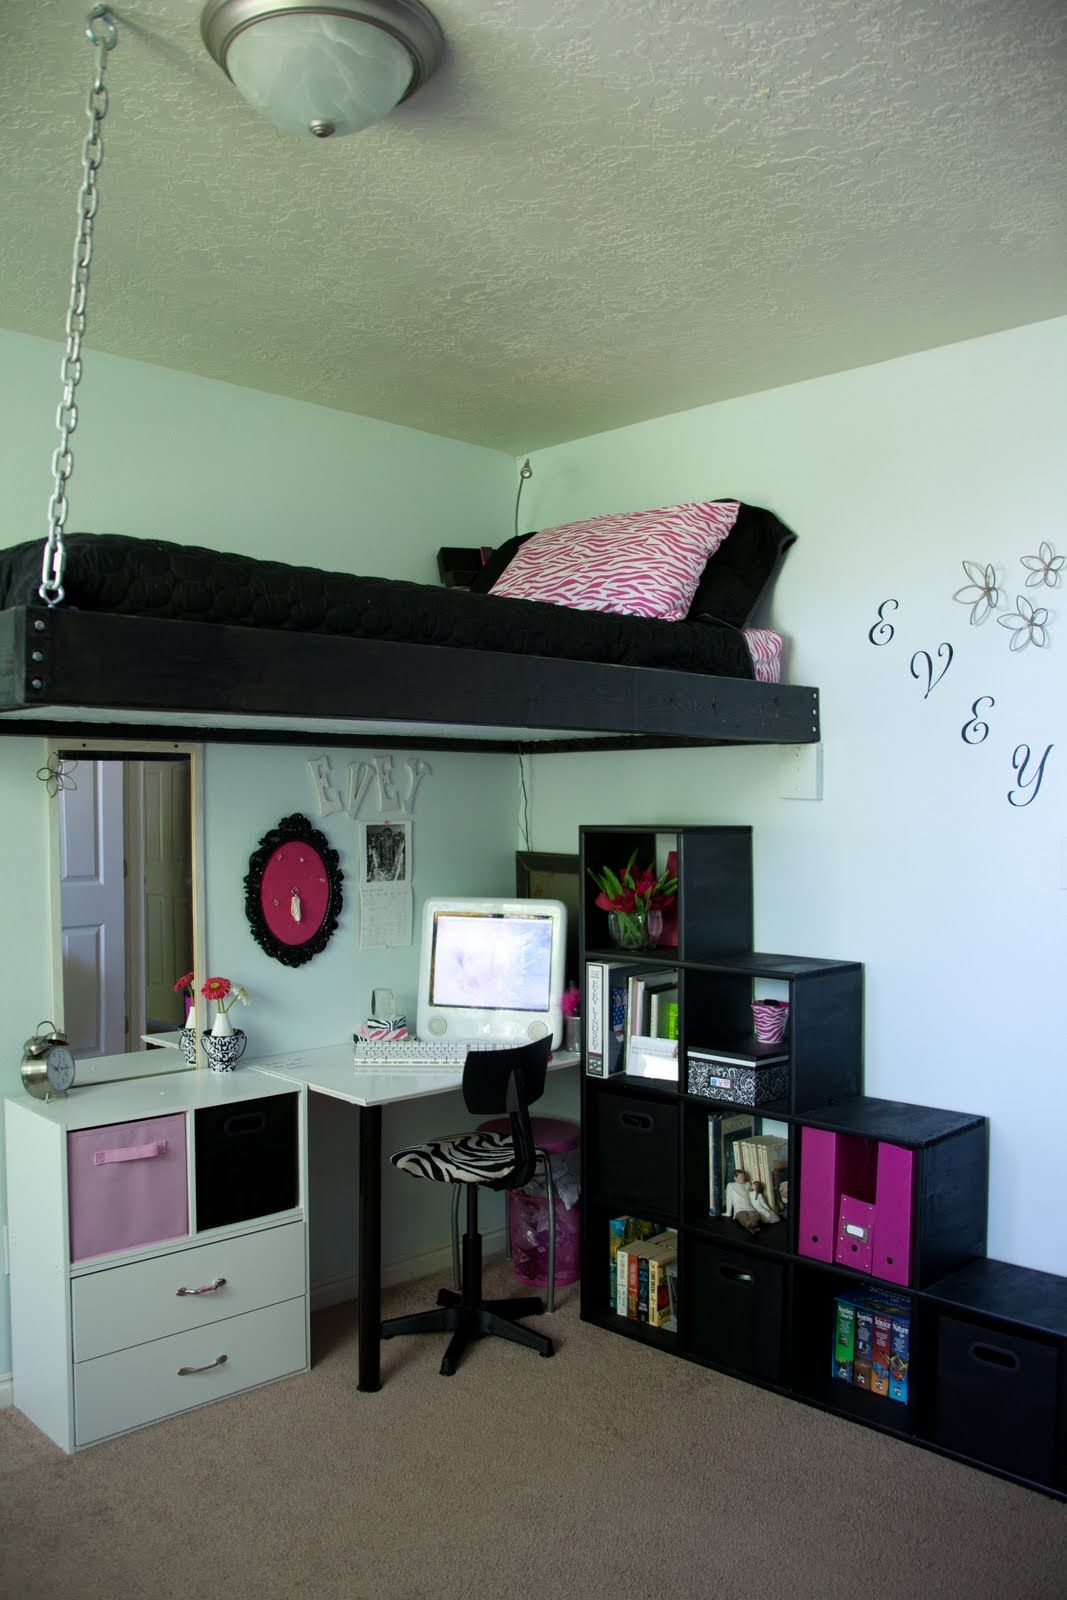 Homemade Loft Bed Great Way To Save Space Cute Home